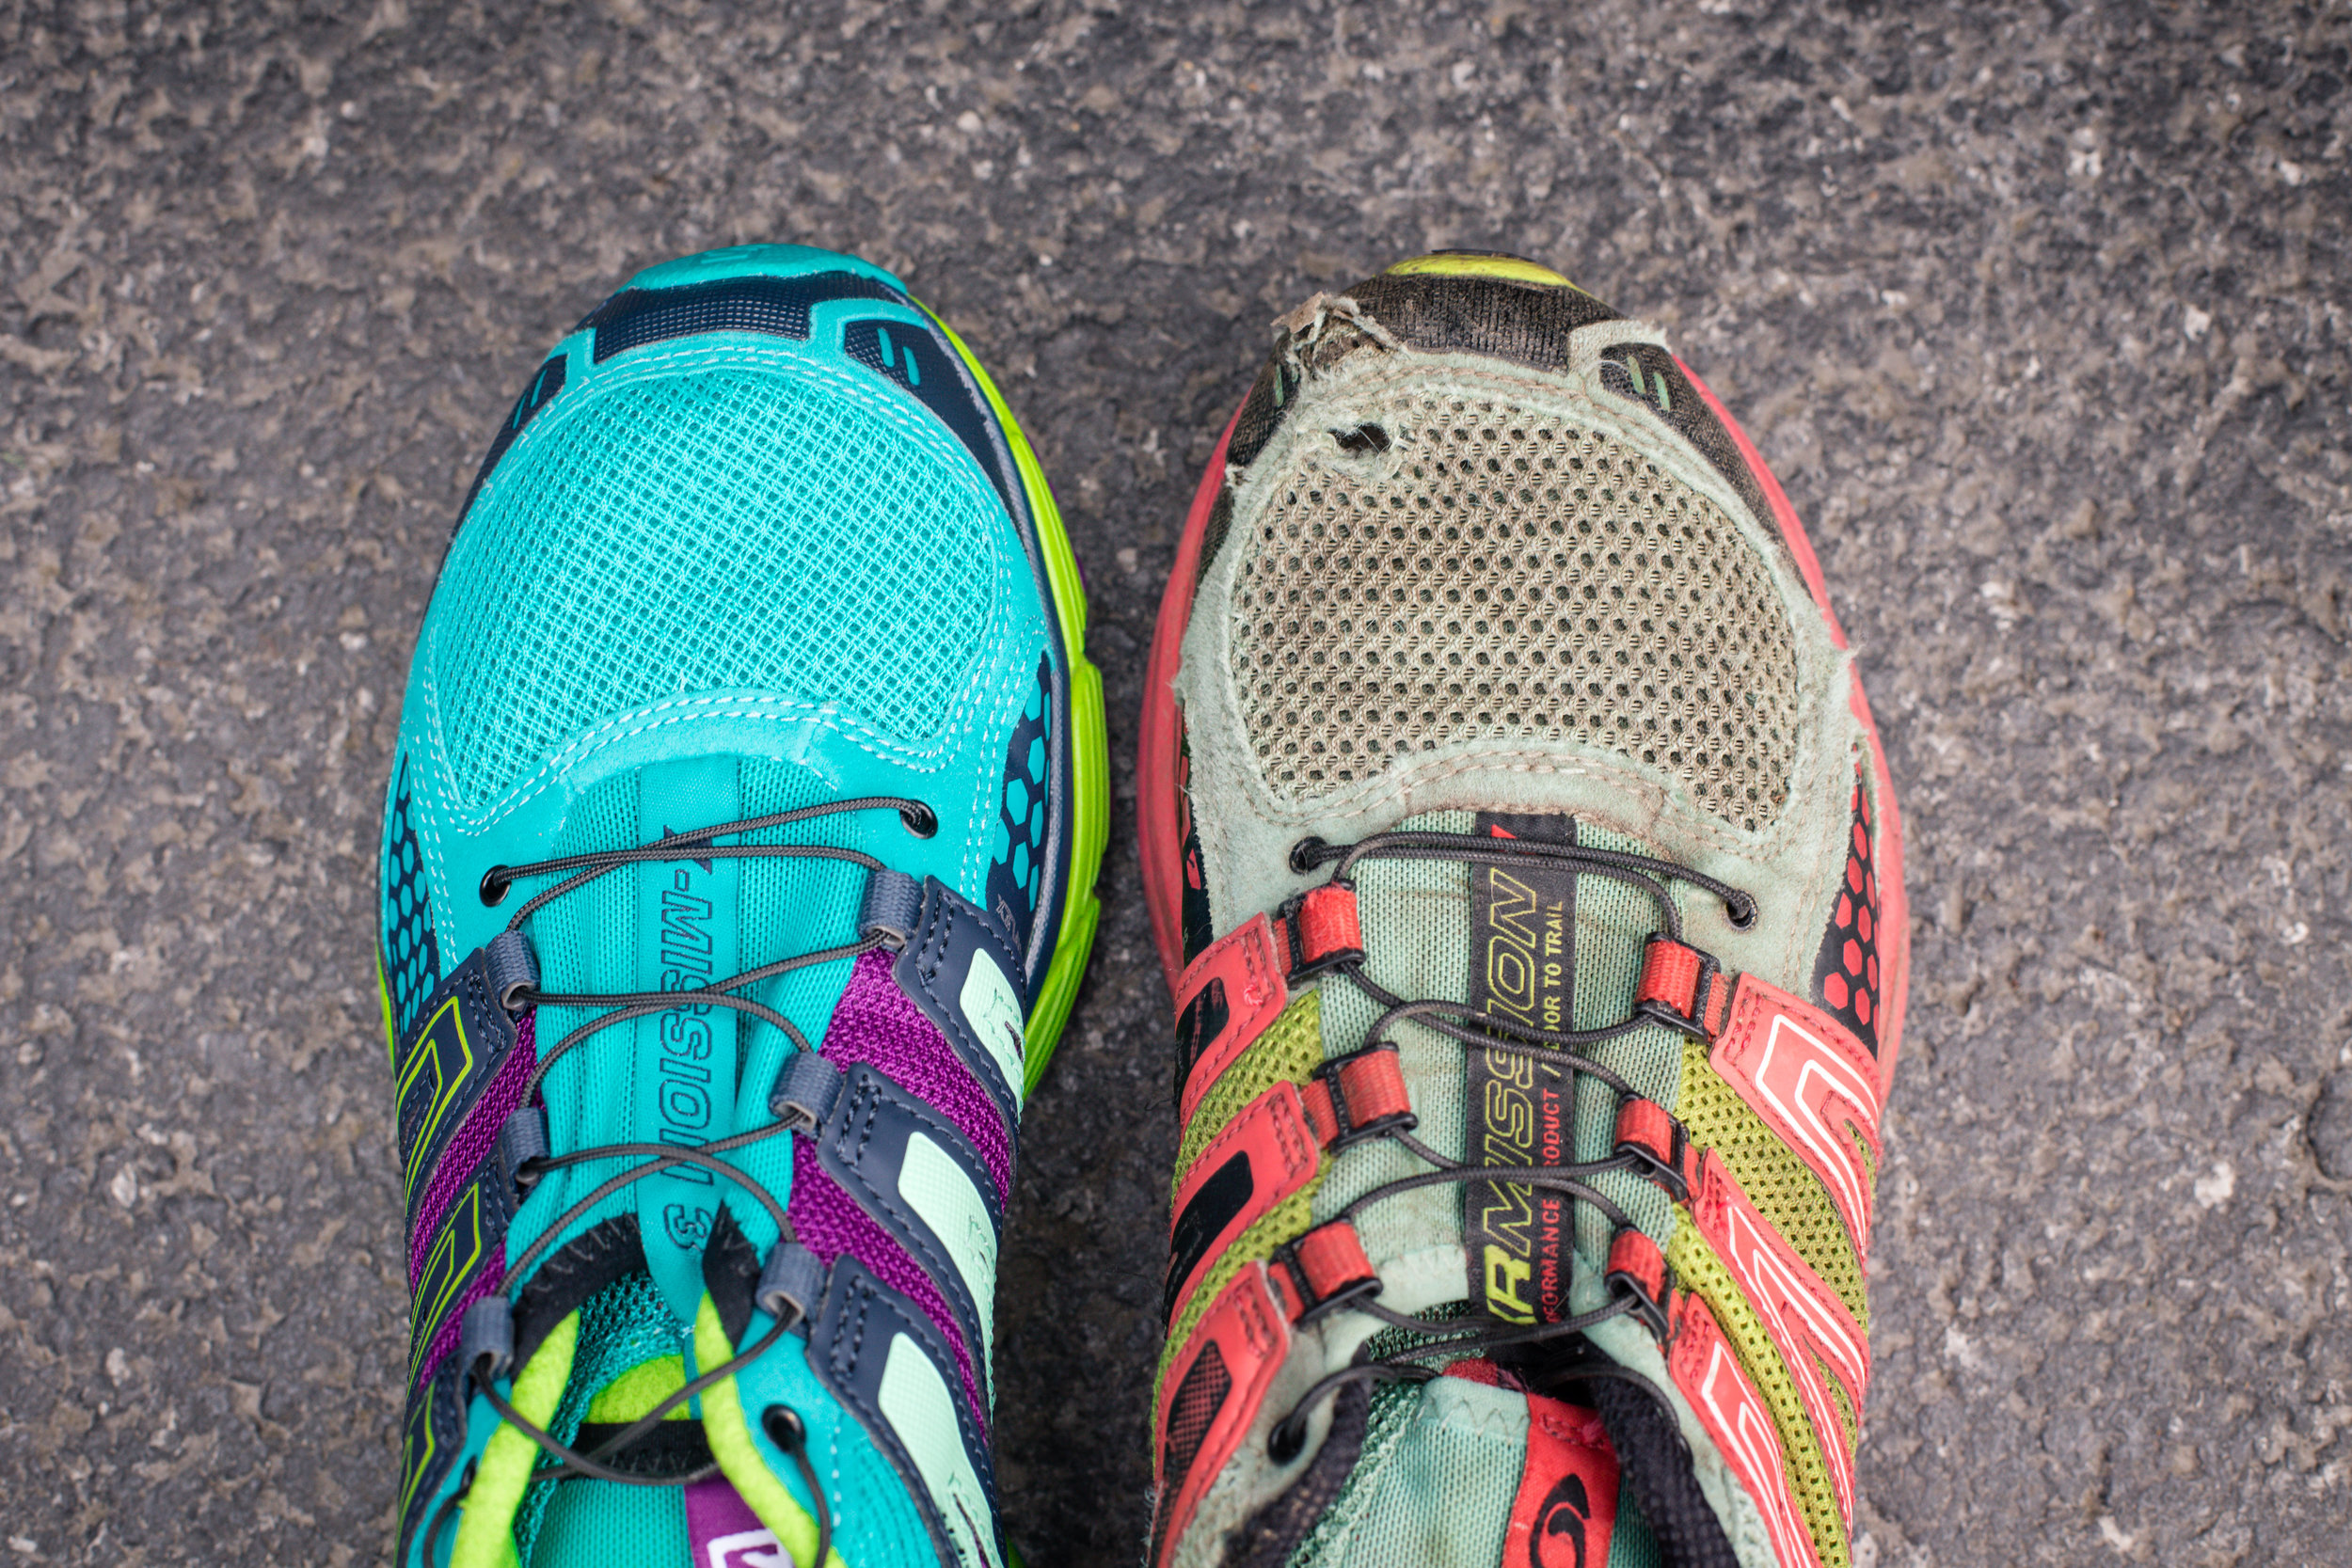 152 // 366 My new and first trail runners